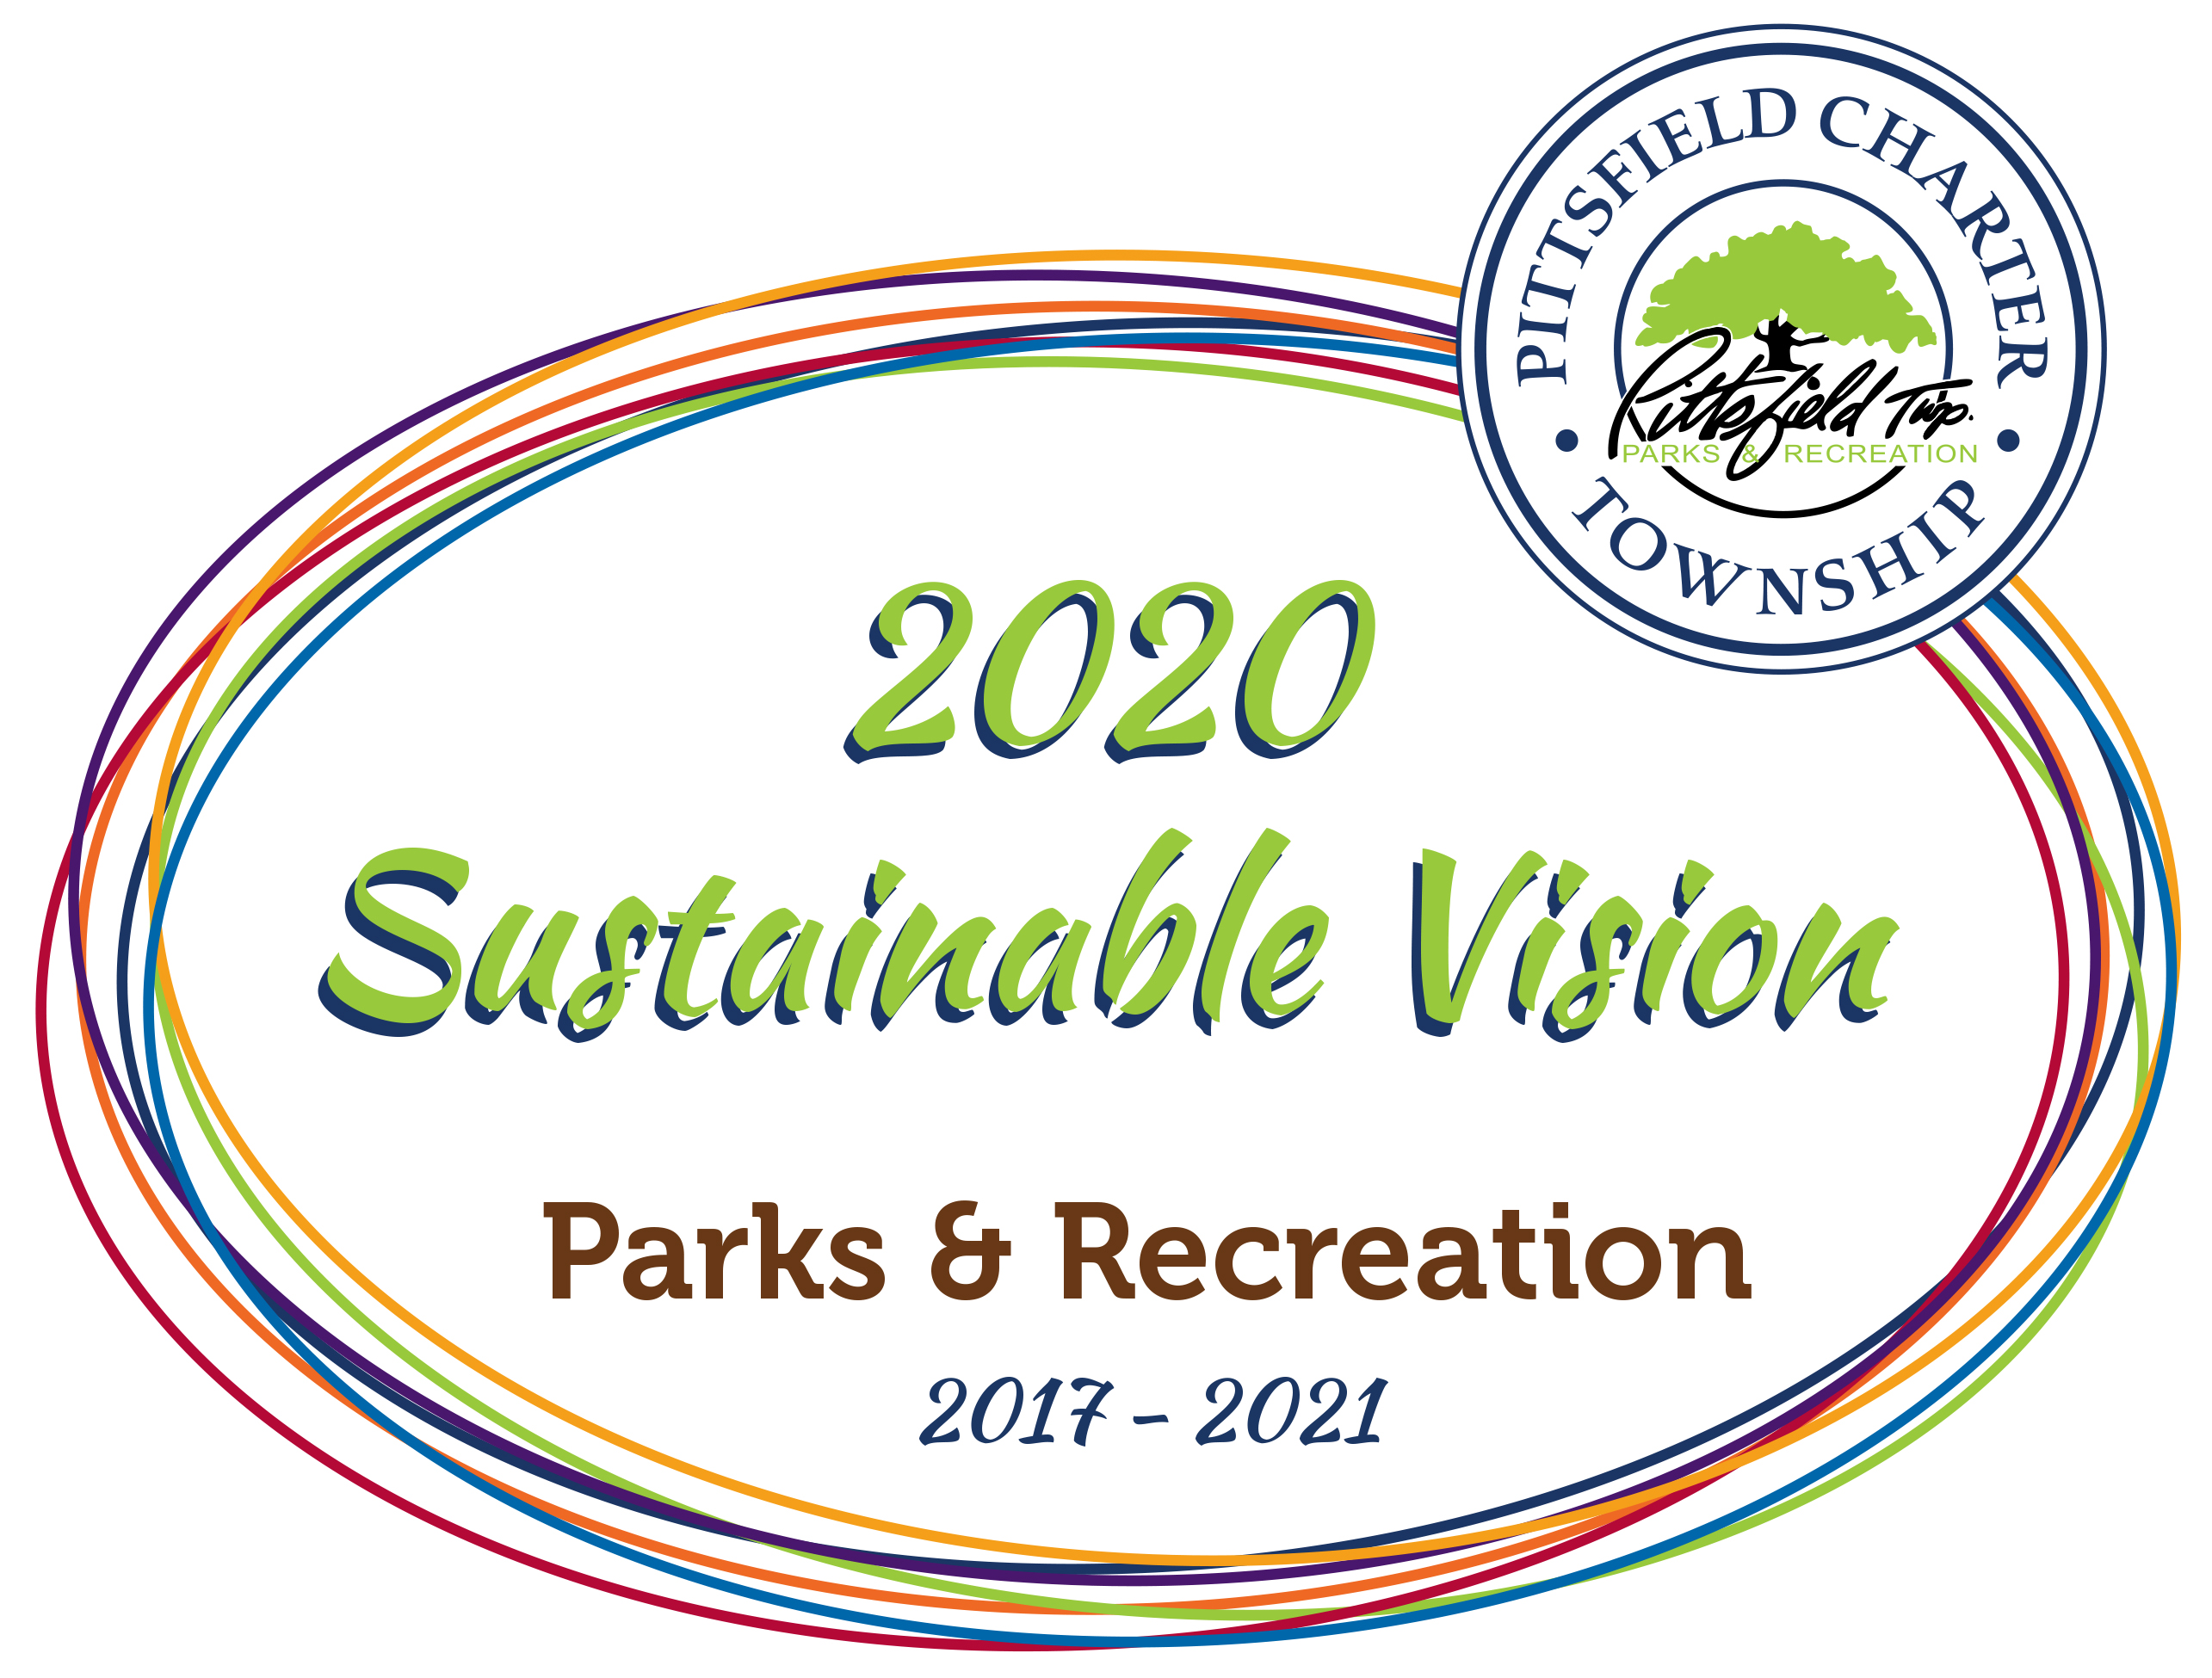 2020 Sustainable Vision Parks and Recreation Master Plan